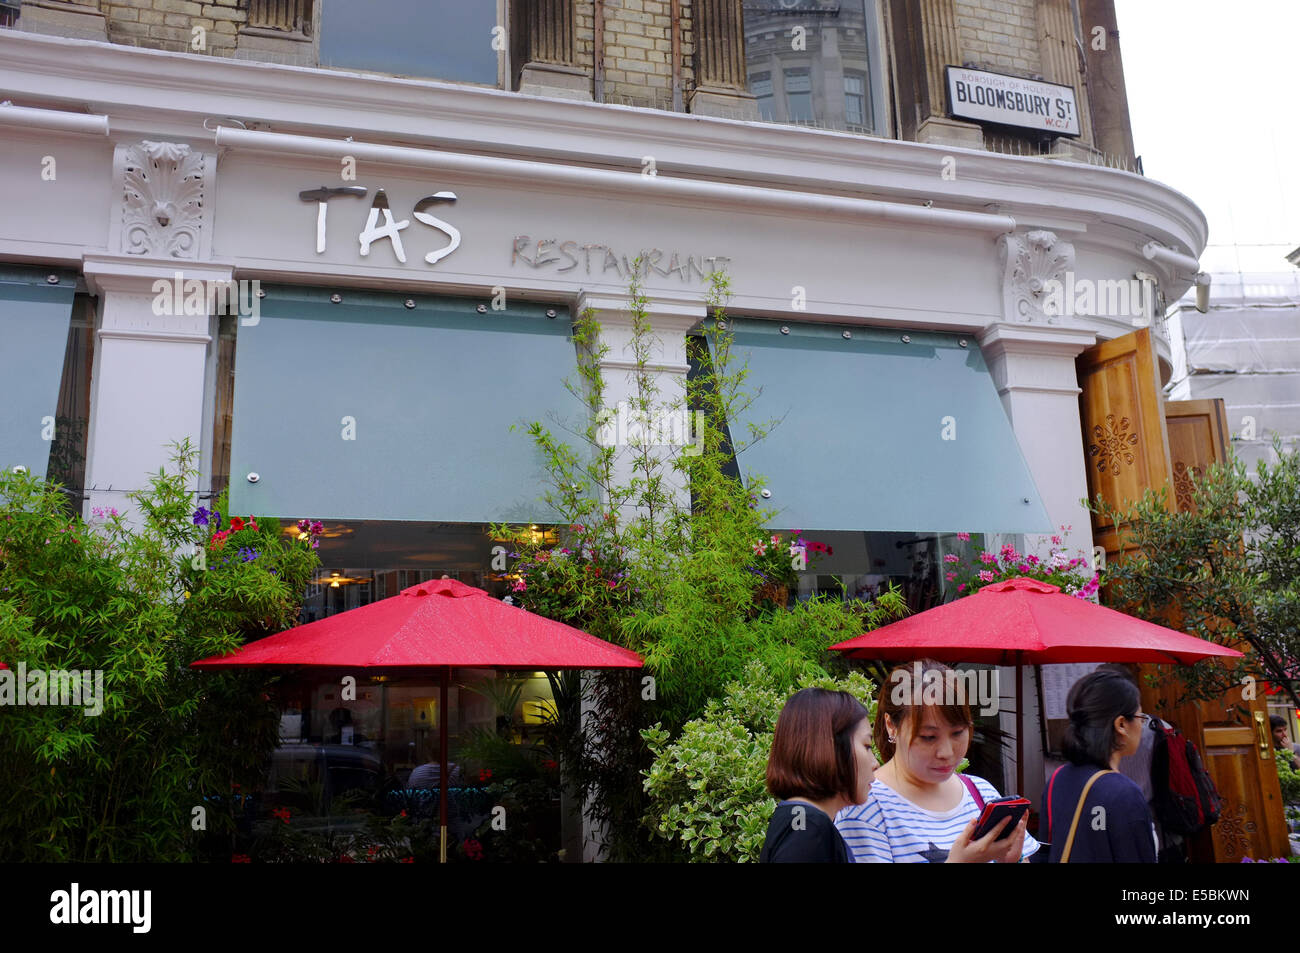 Tas restaurant on bloomsbury street london stock photo for 14th avenue salon albany oregon